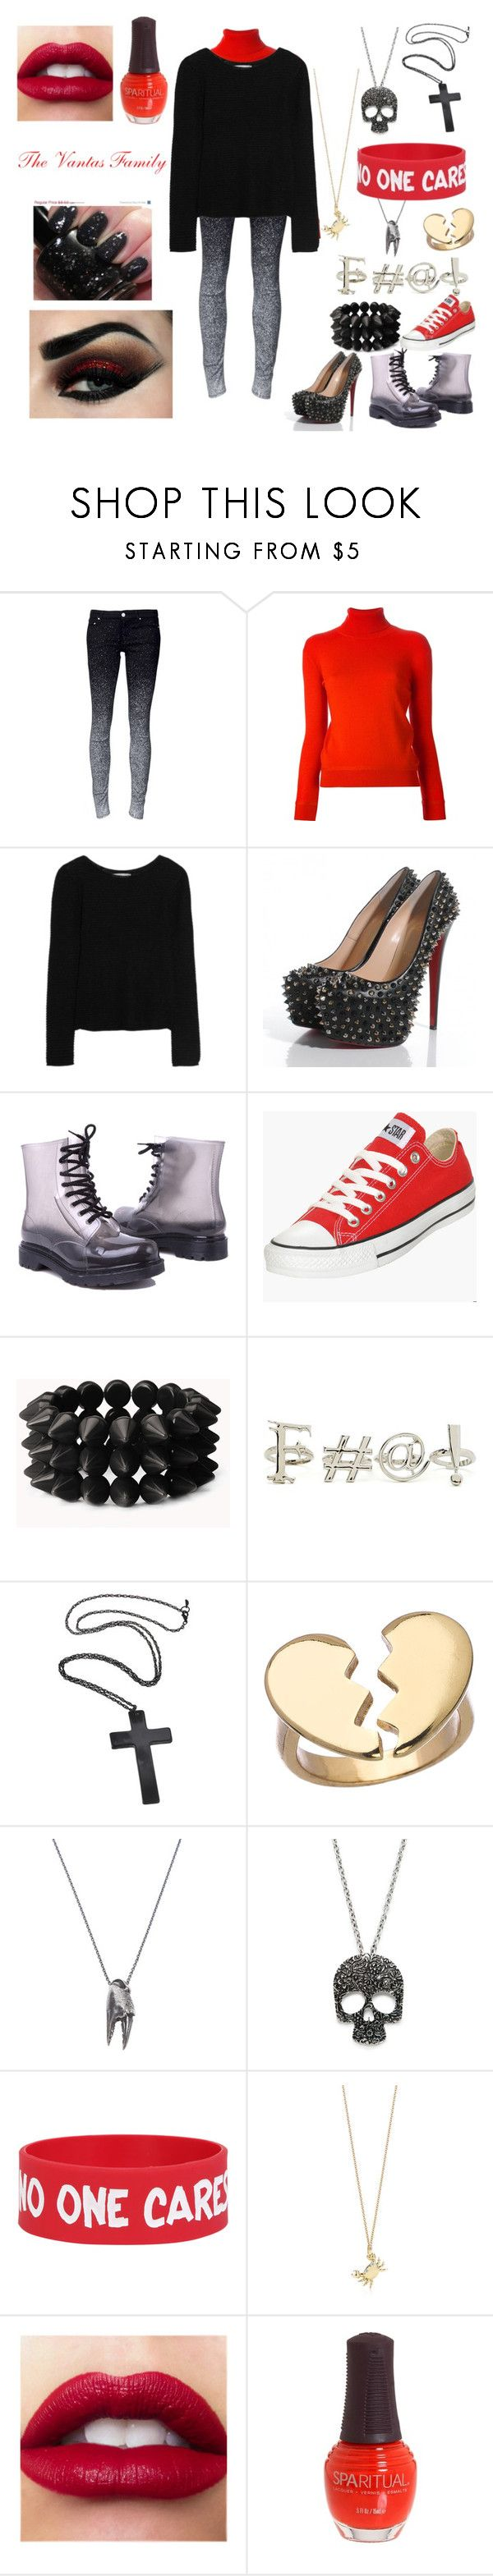 """The Vantas Family - Homestuck"" by nerd-inspired ❤ liked on Polyvore featuring Carven, Kain, Christian Louboutin, Converse, Forever 21, Blu Bijoux, Bukkehave, MANGO, GUESS and Tiffany & Co."